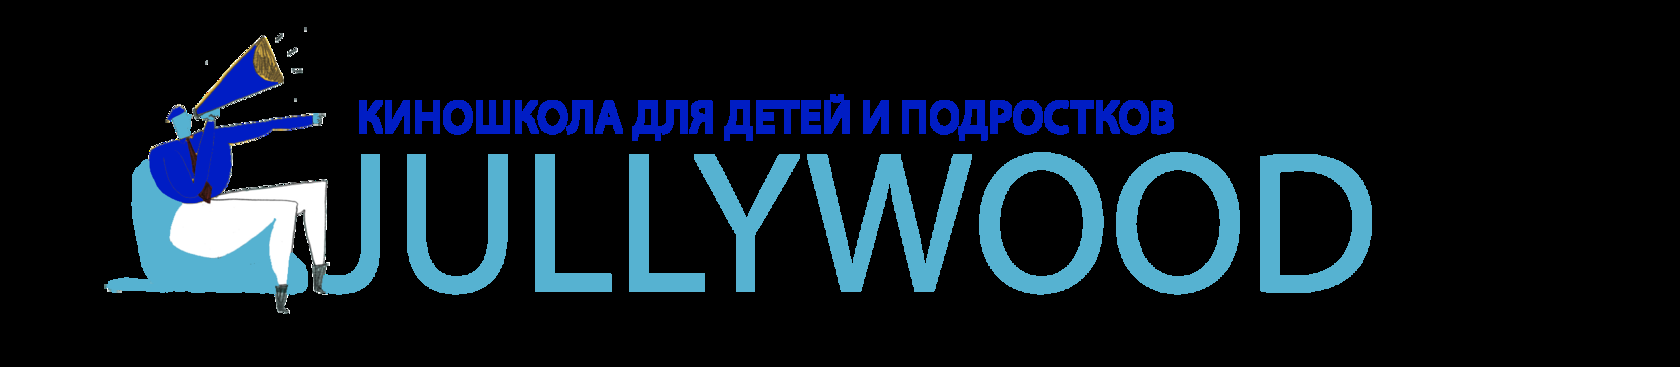 Актерская школа JULLYWOOD